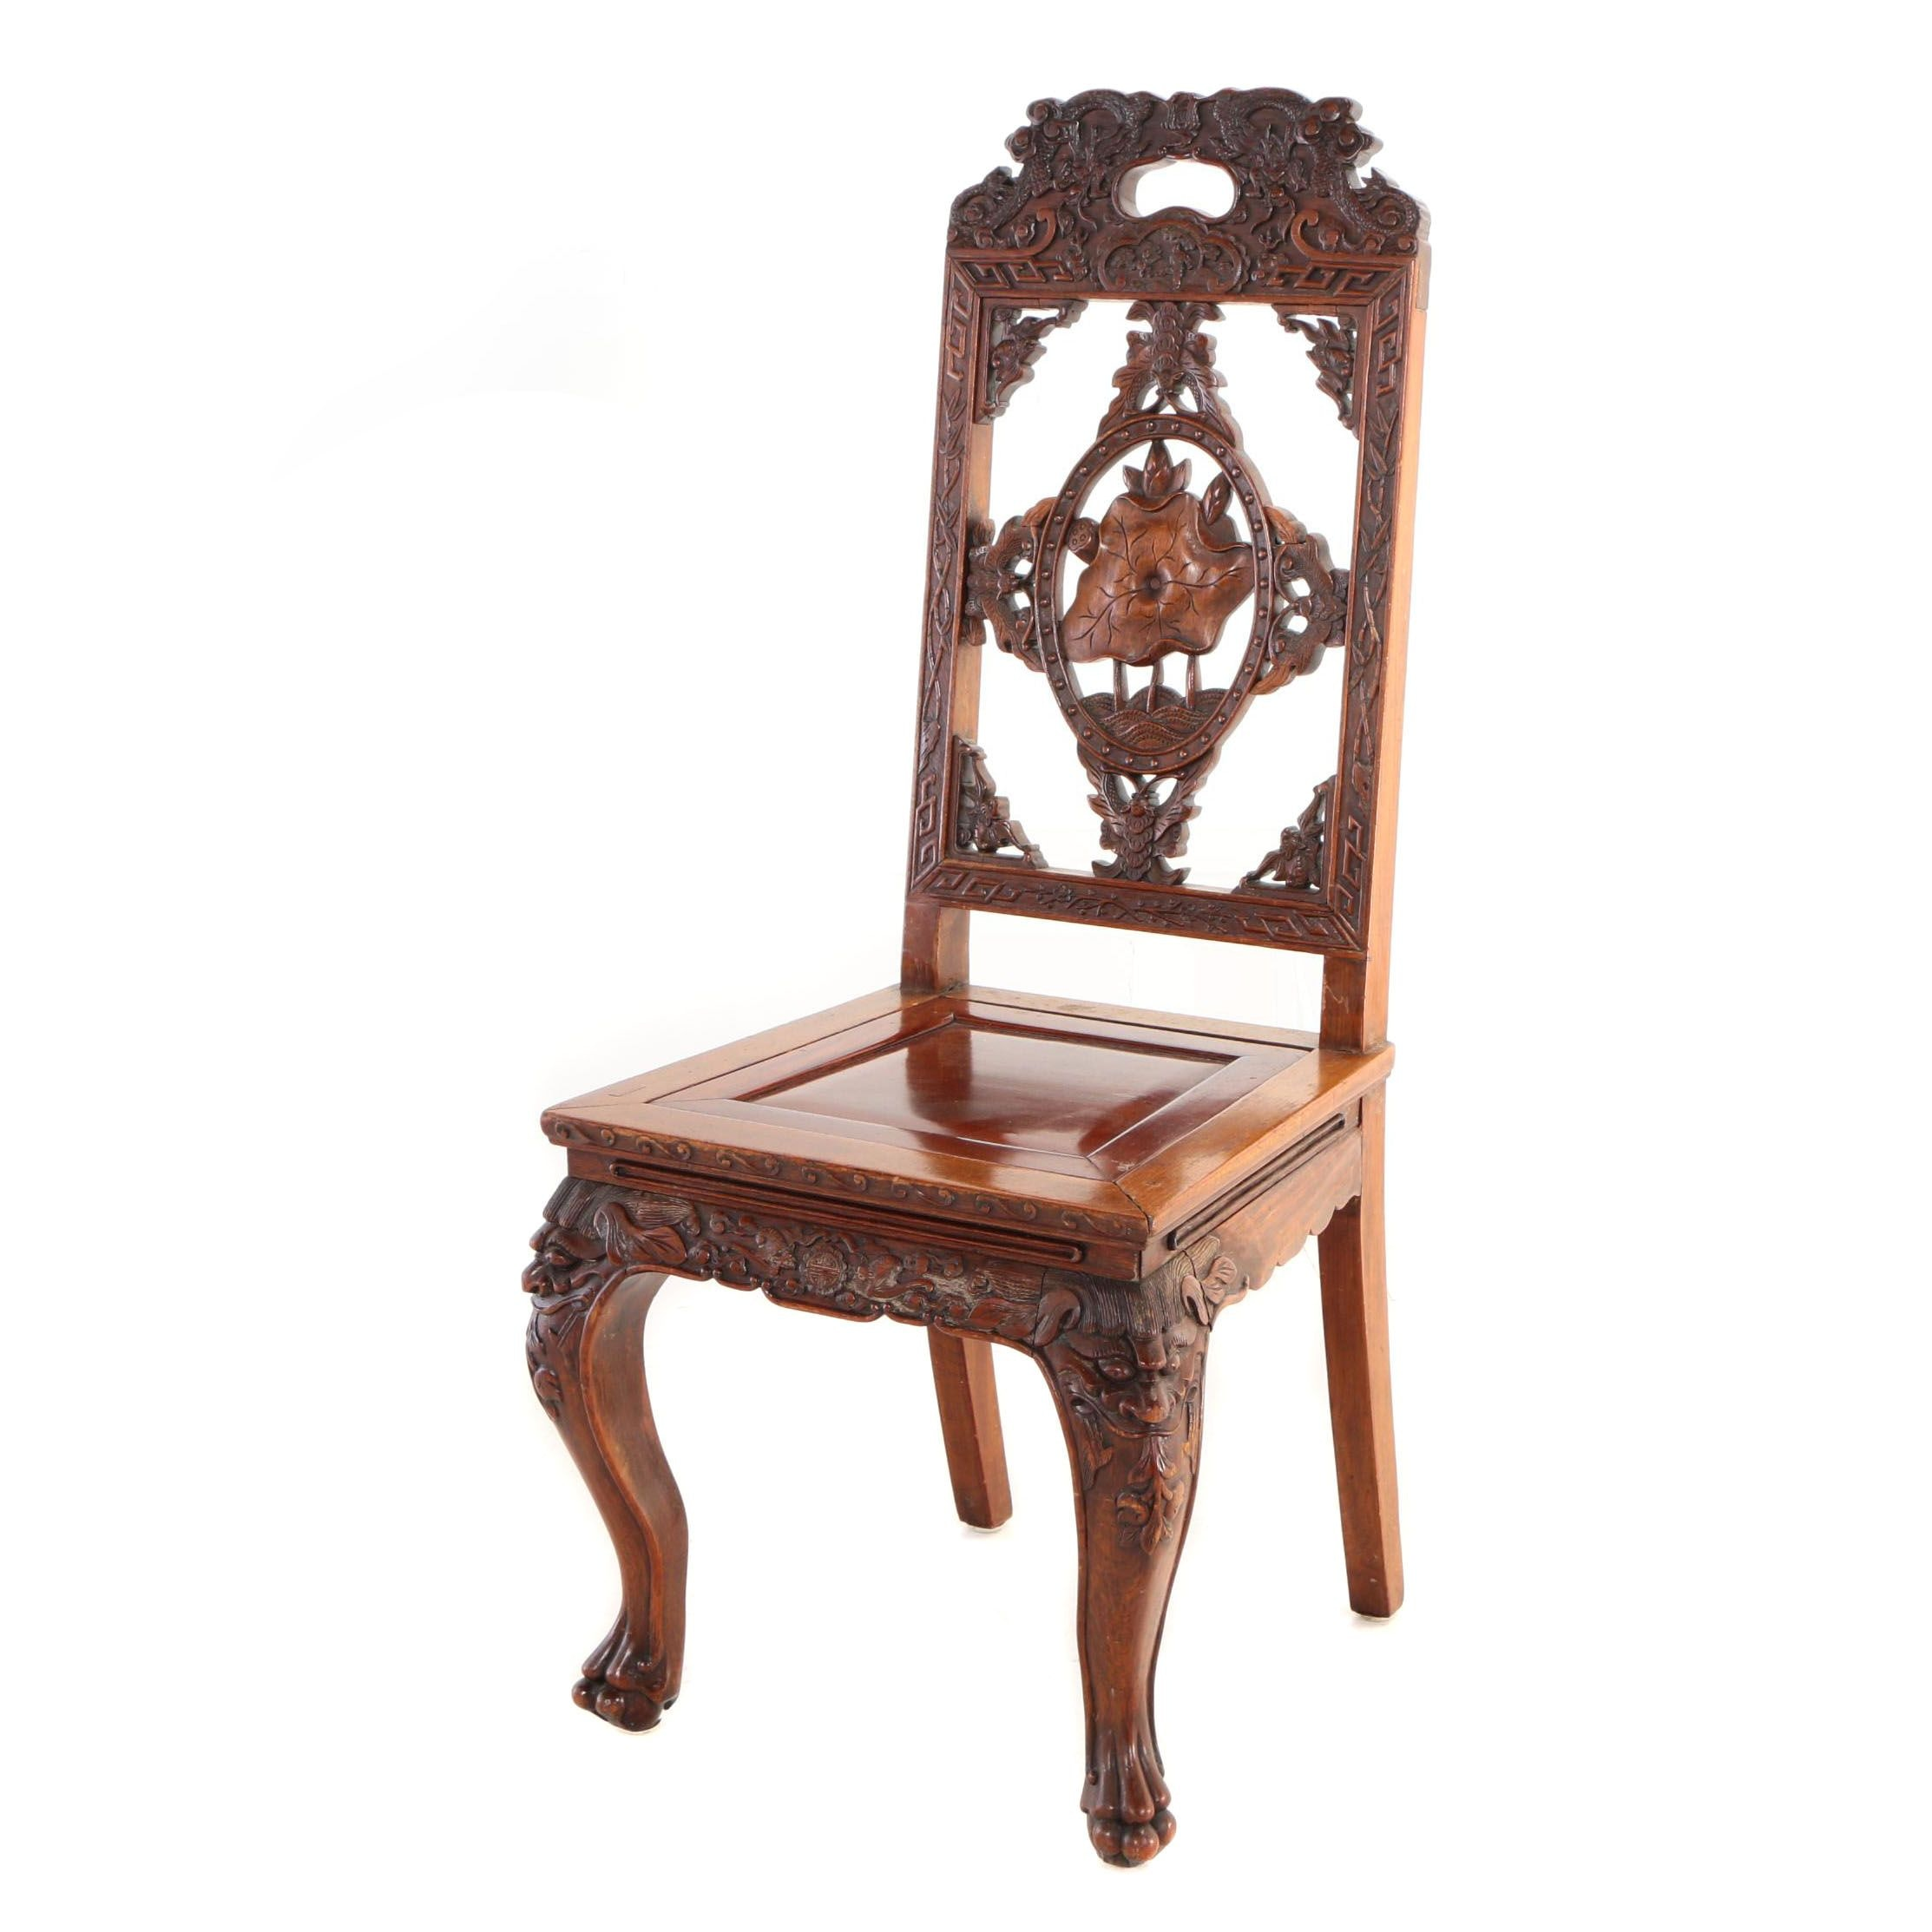 Chinese Carved Hardwood Side Chair, Late 19th/Early 20th Century